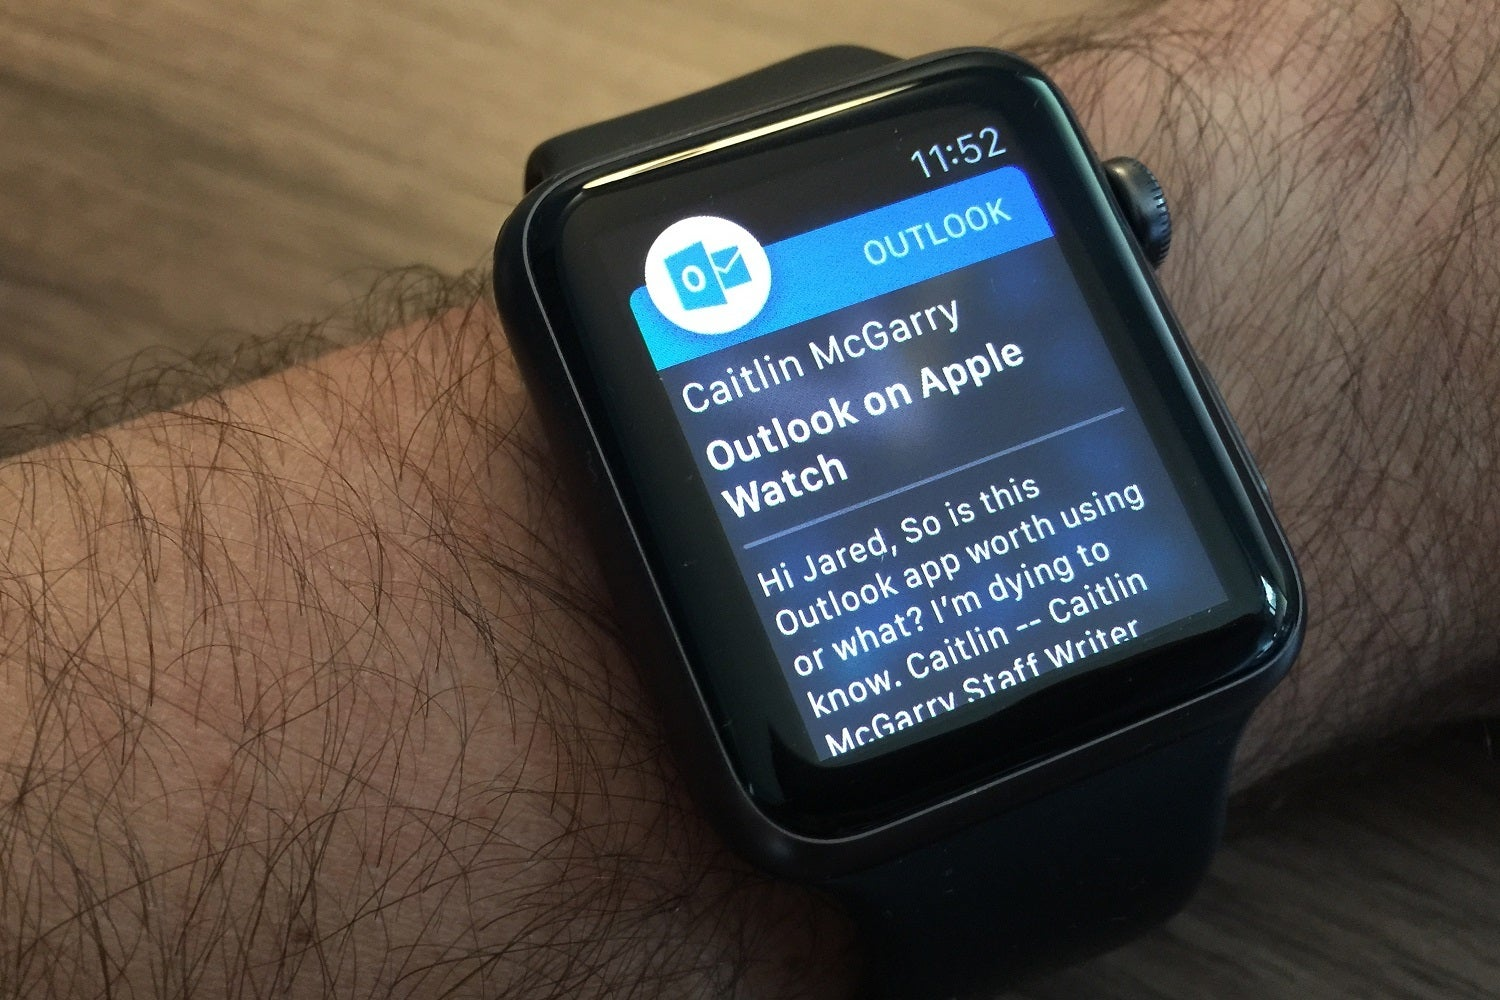 how to delete wechat message on apple watch